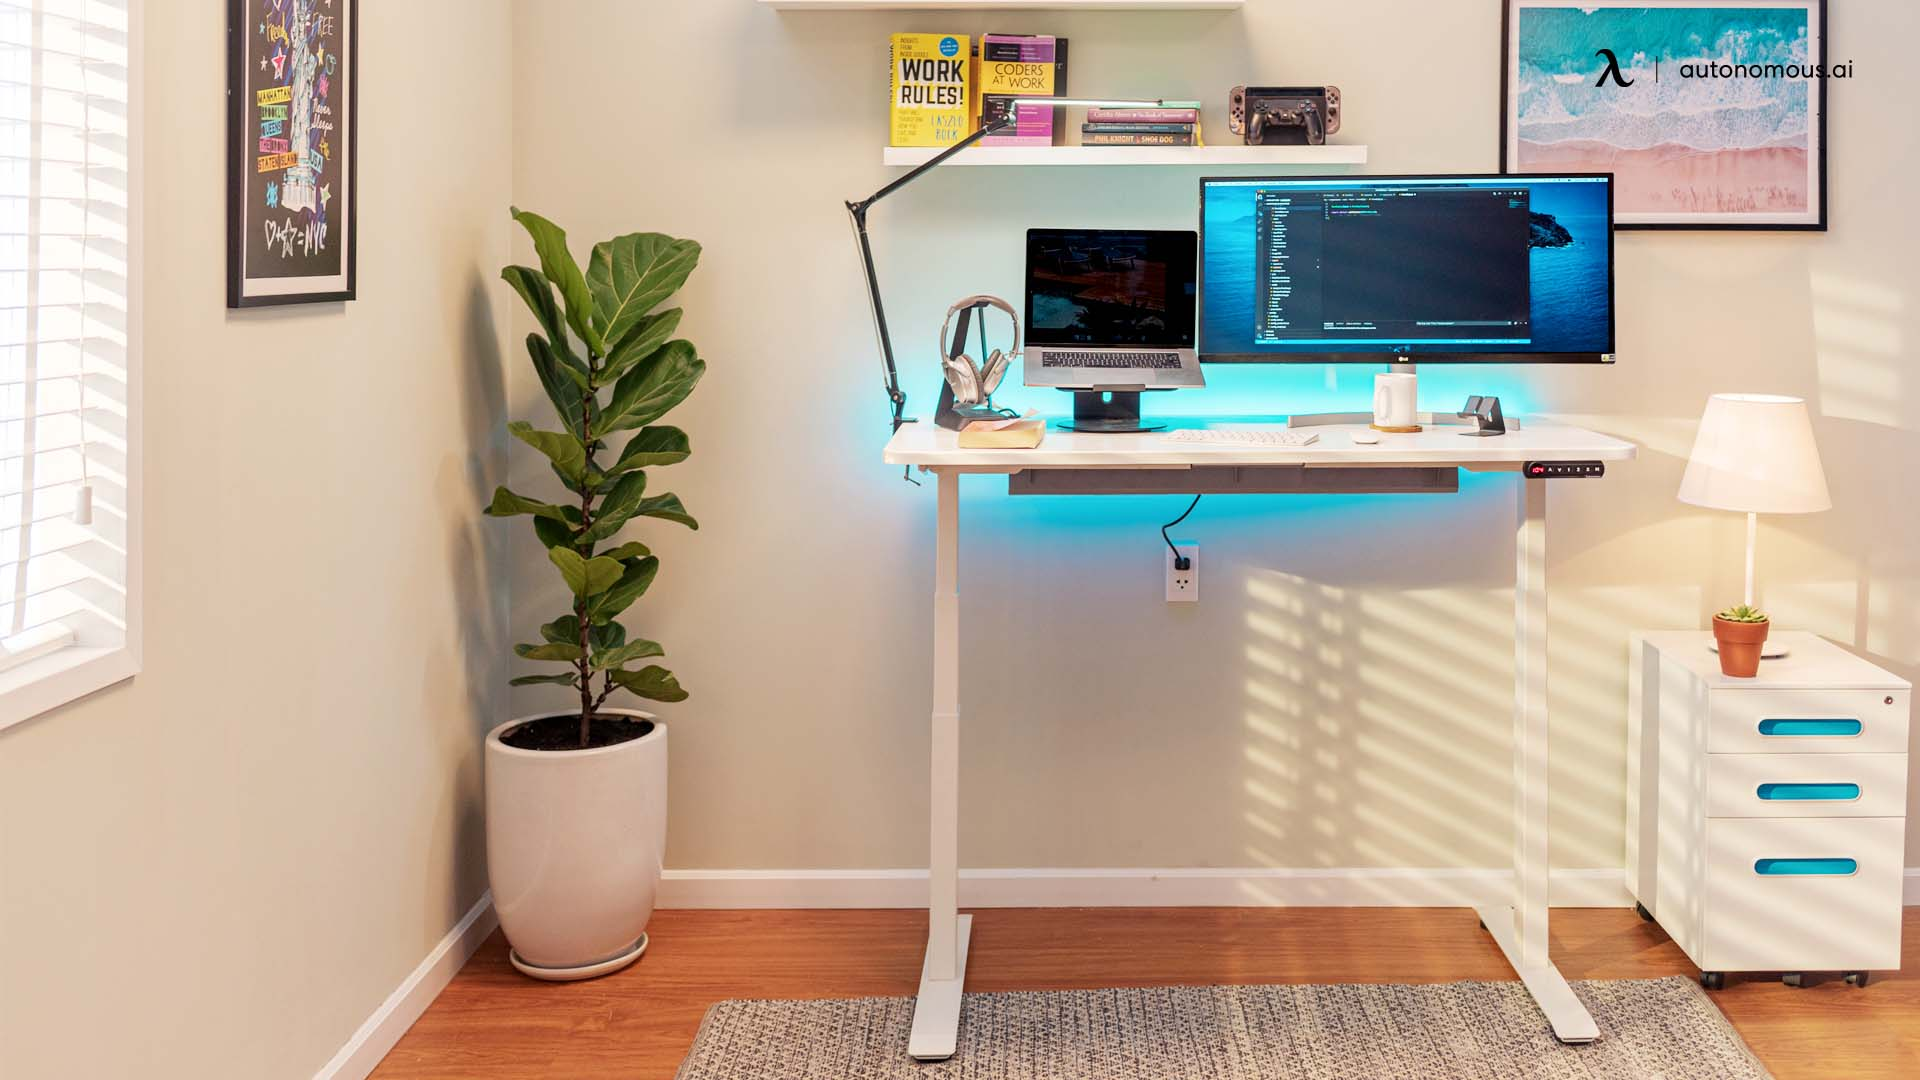 What is the best place to acquire a height-adjustable desk in Australia?